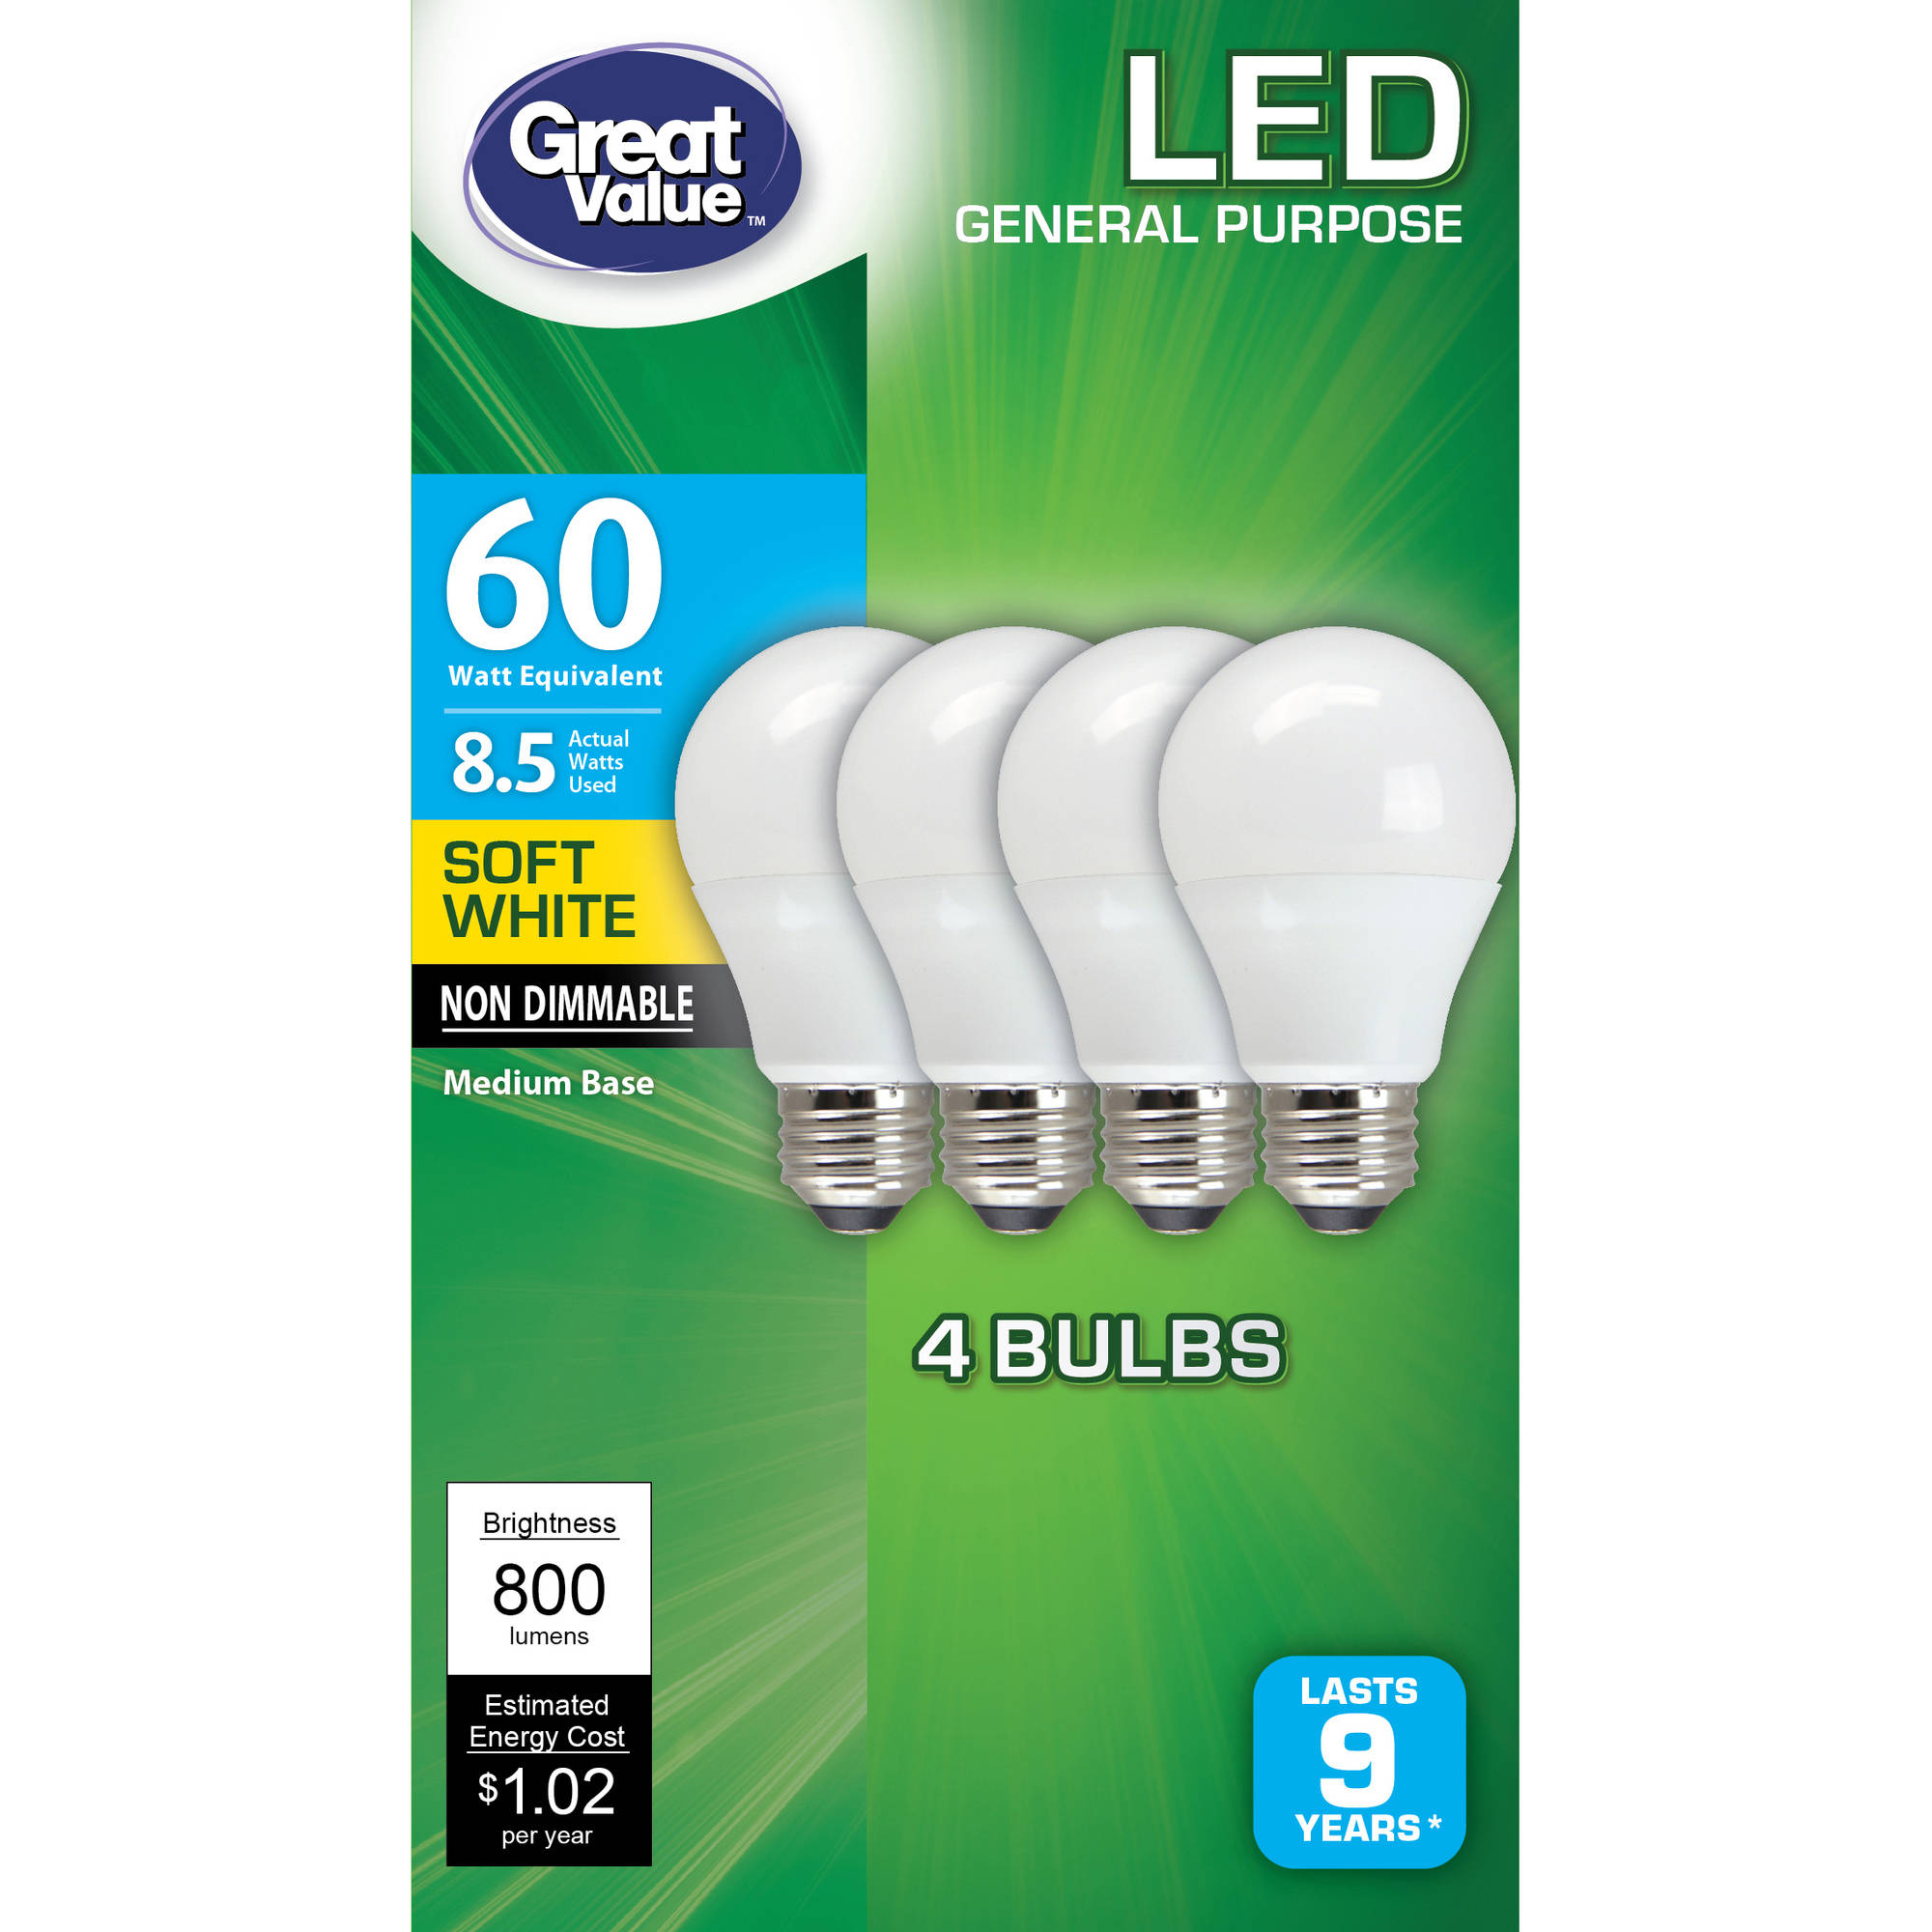 Great Value LED Light Bulbs, 8.5W (60W Equivalent), Soft White, 4-count